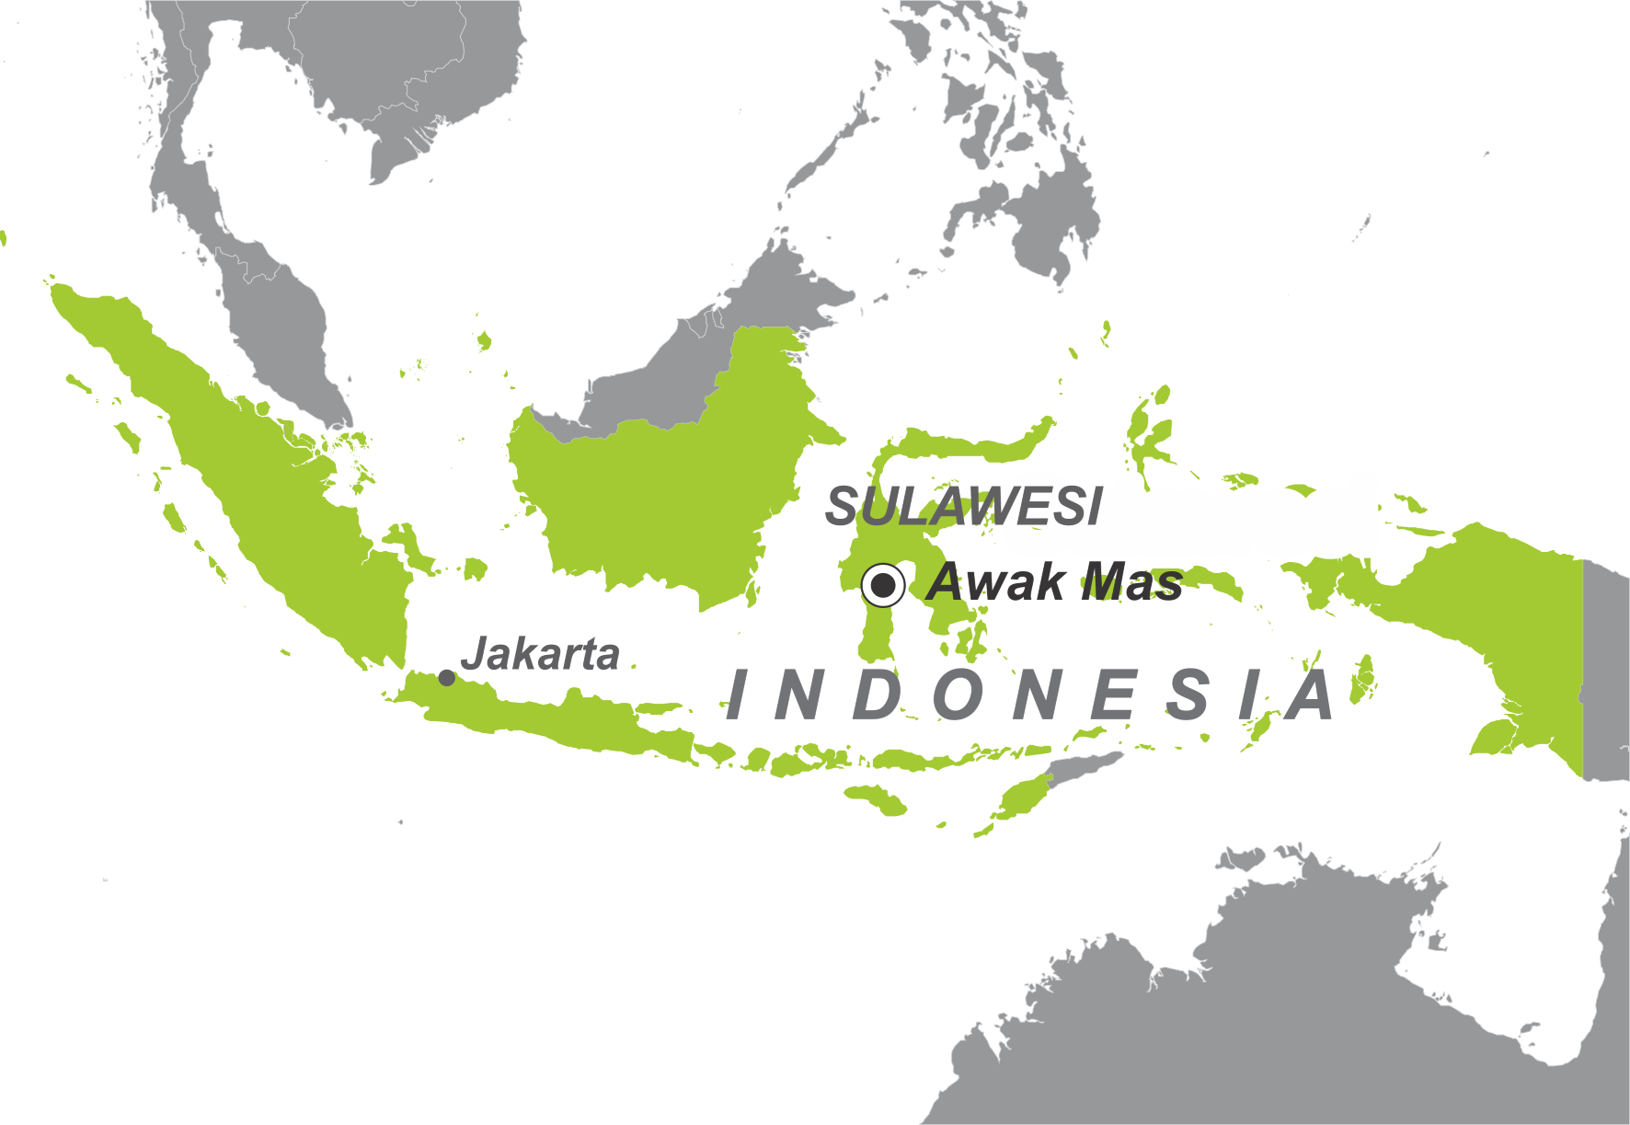 Figure 1: Awak Mas Gold Project location in Indonesia.